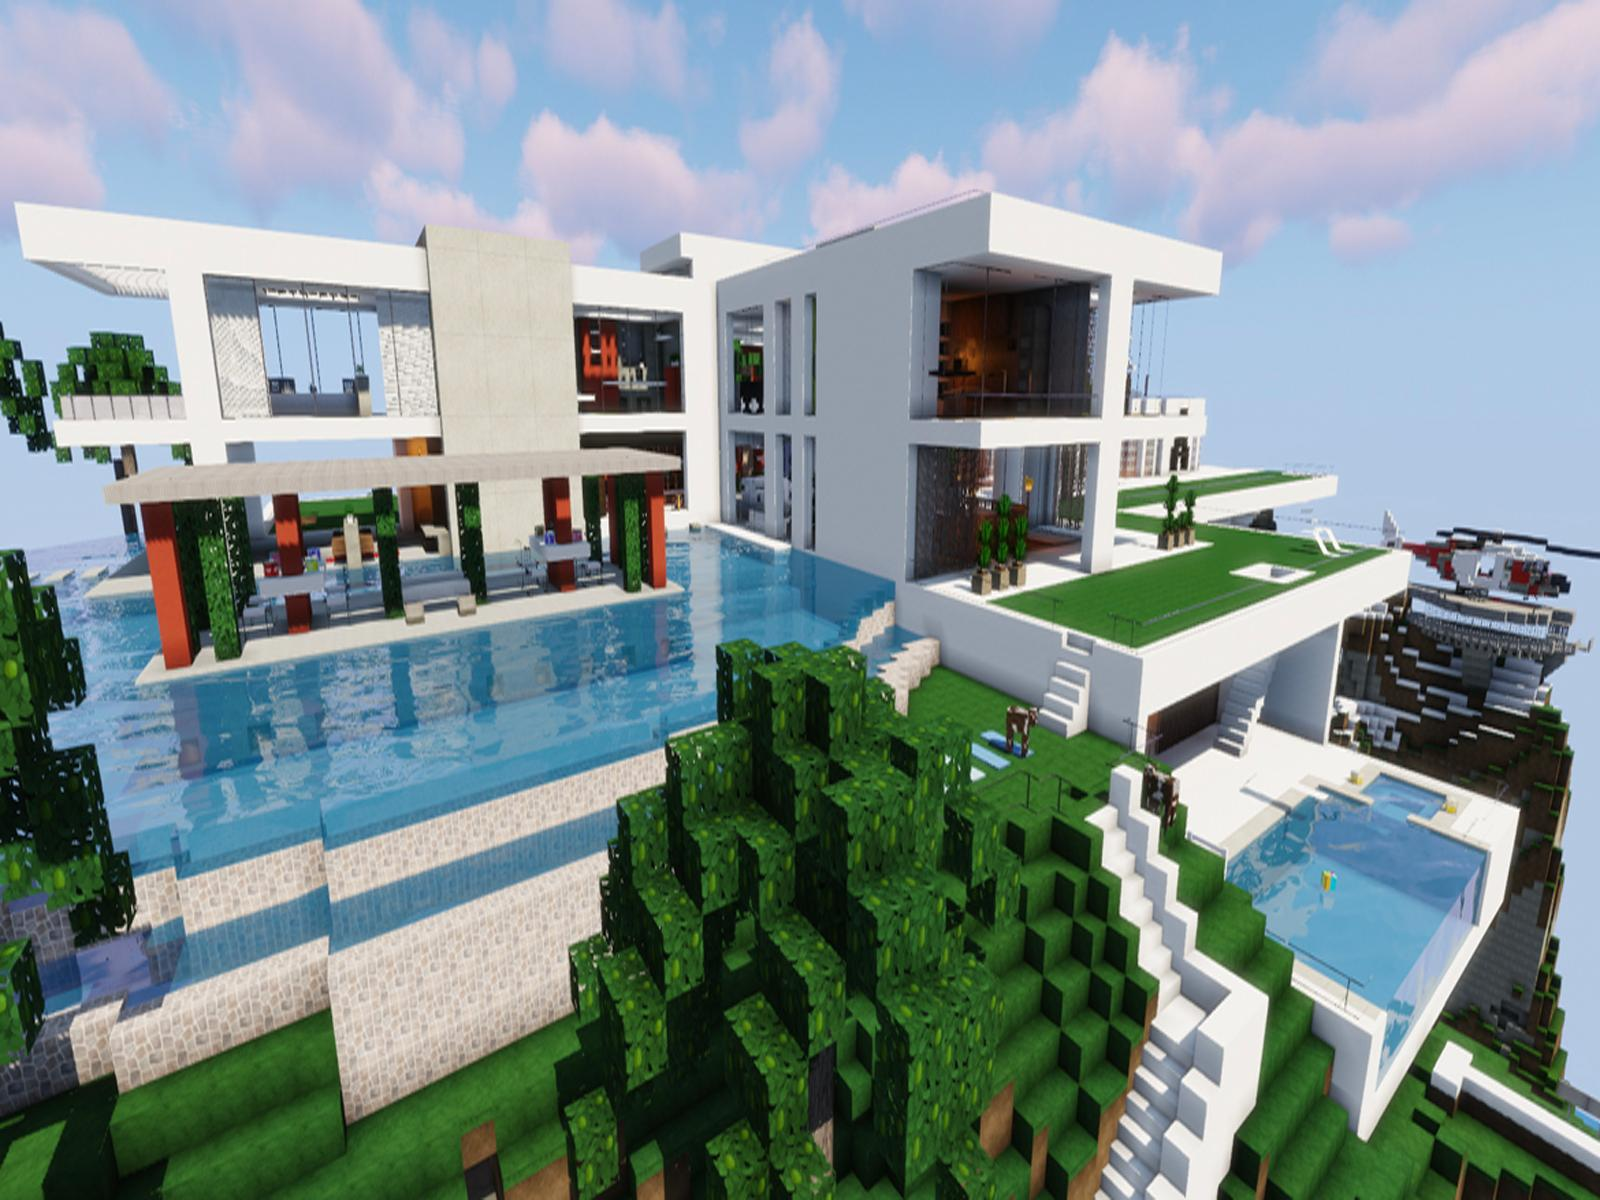 New modern house for minecraft for android apk download